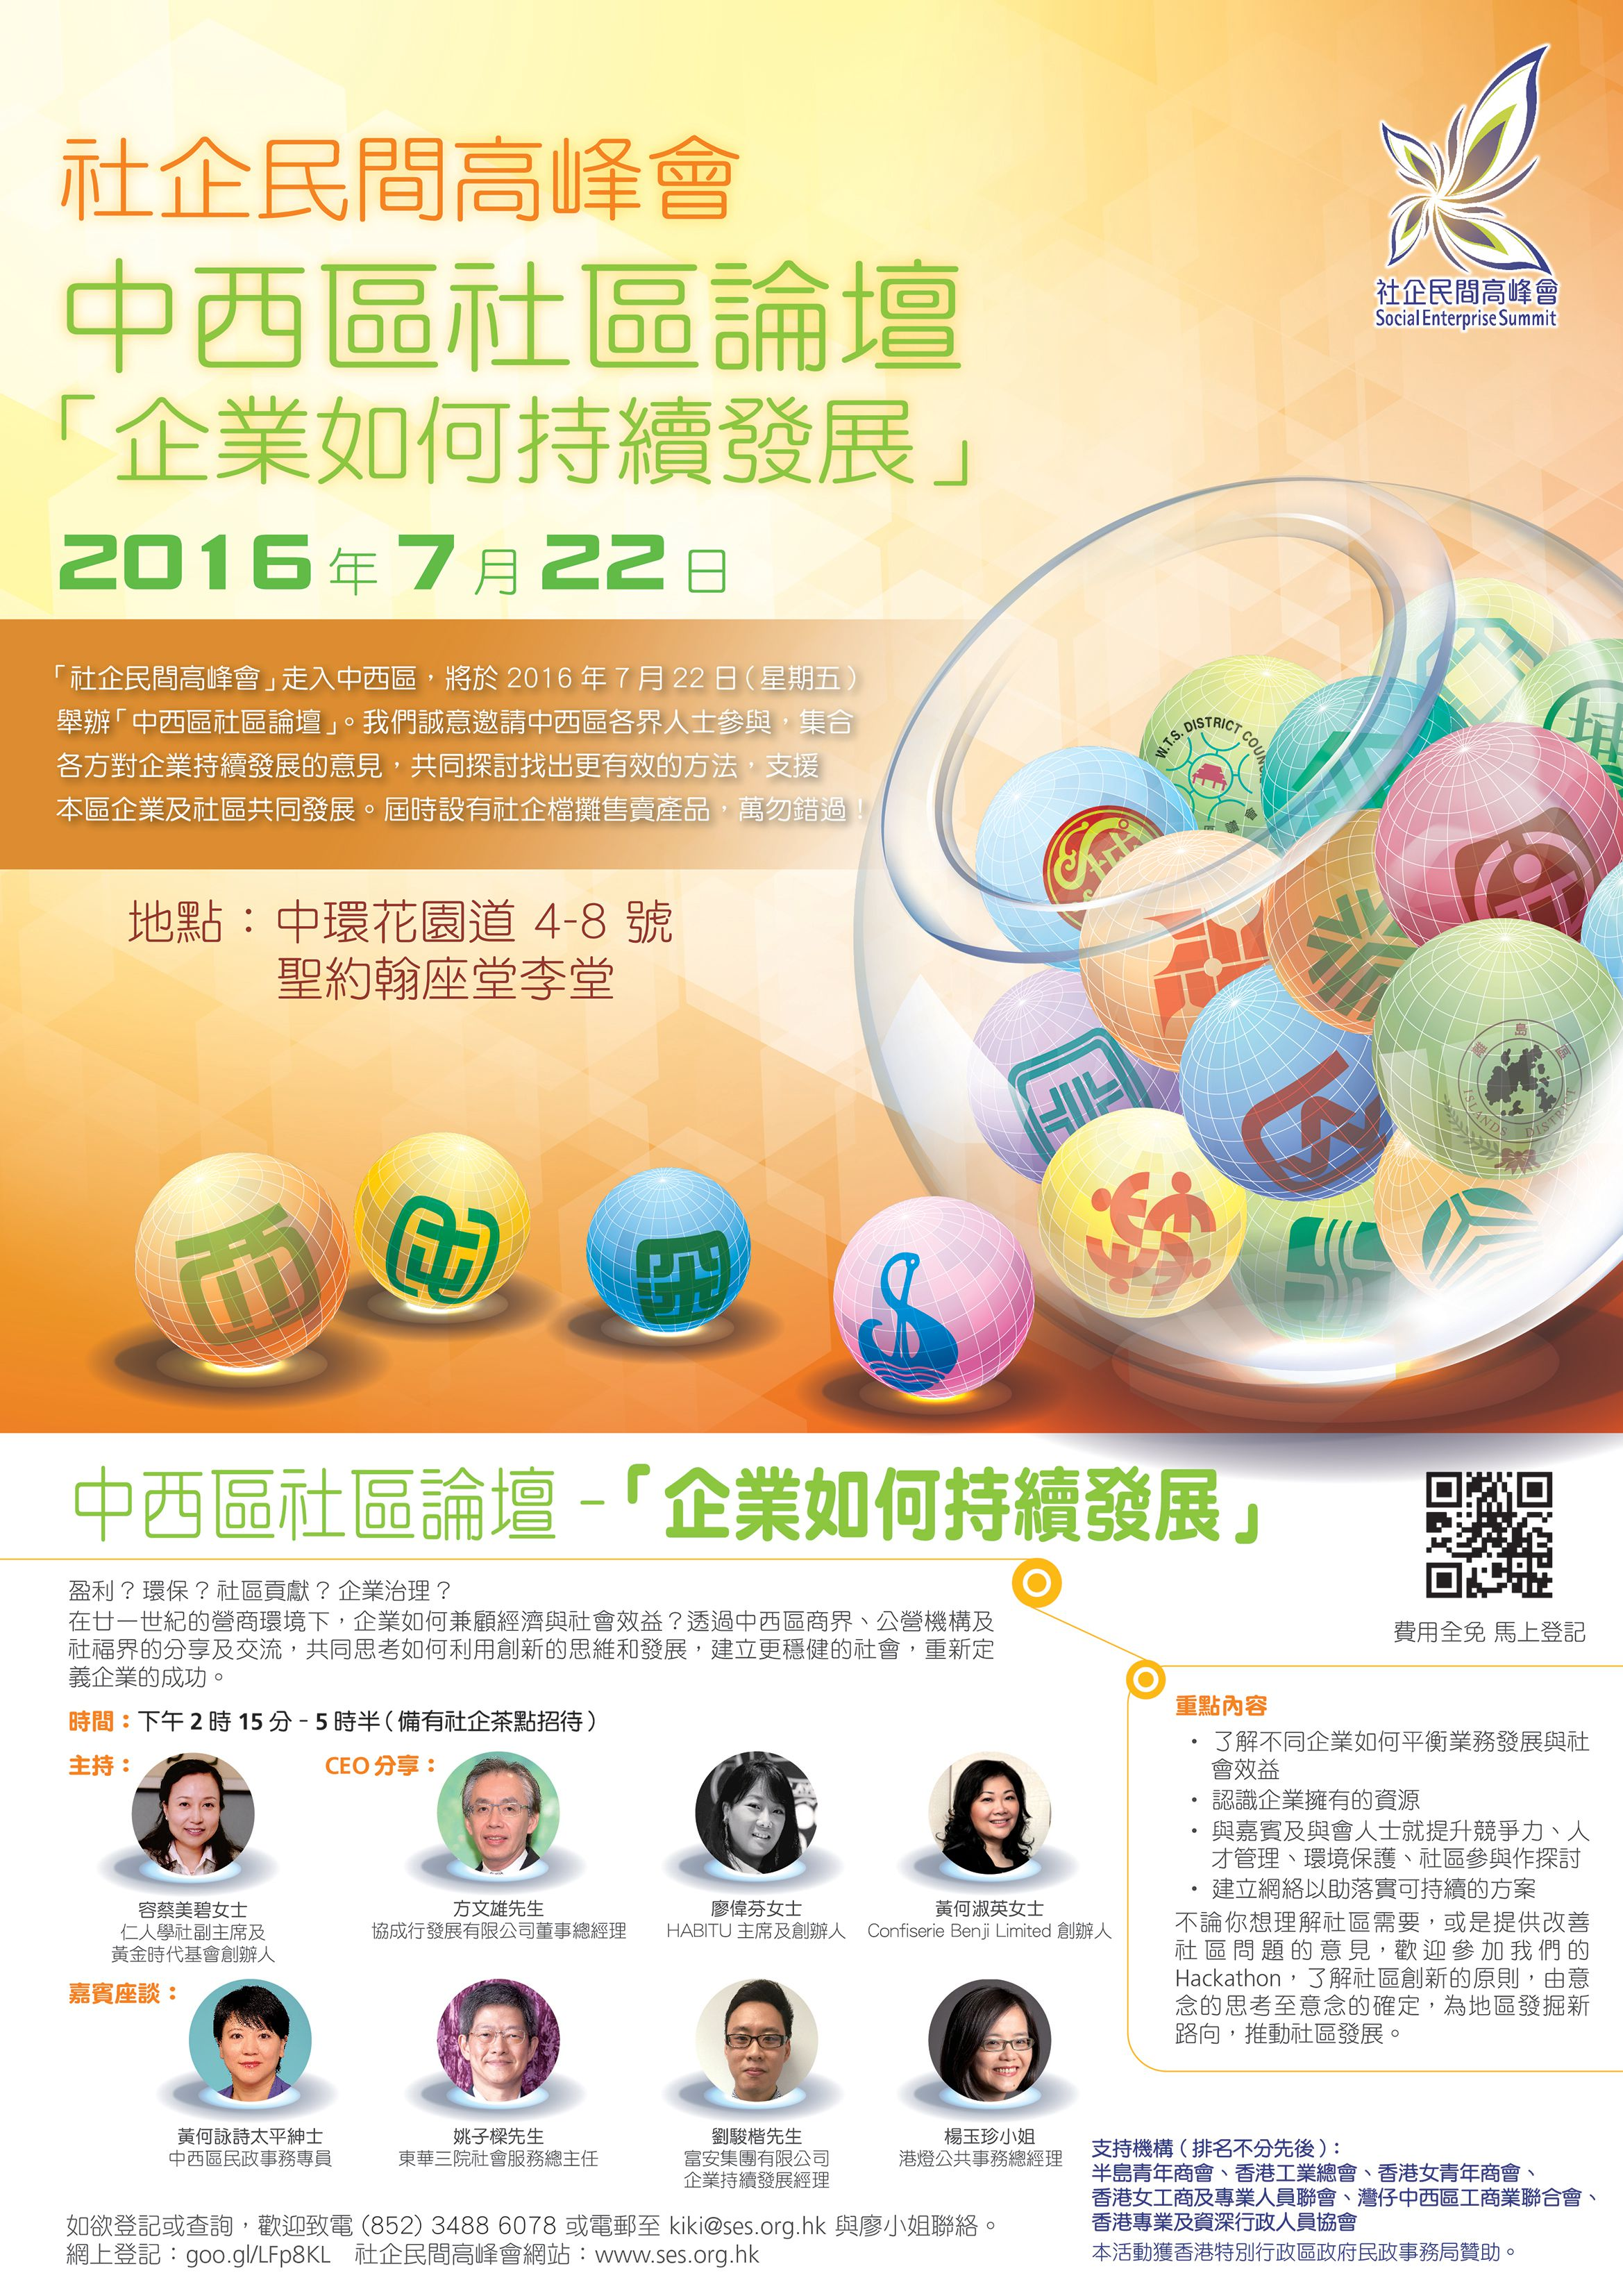 read Social Enterprise Summit — Central and Western District Community Forum (Information in Chinese only) (22 July)